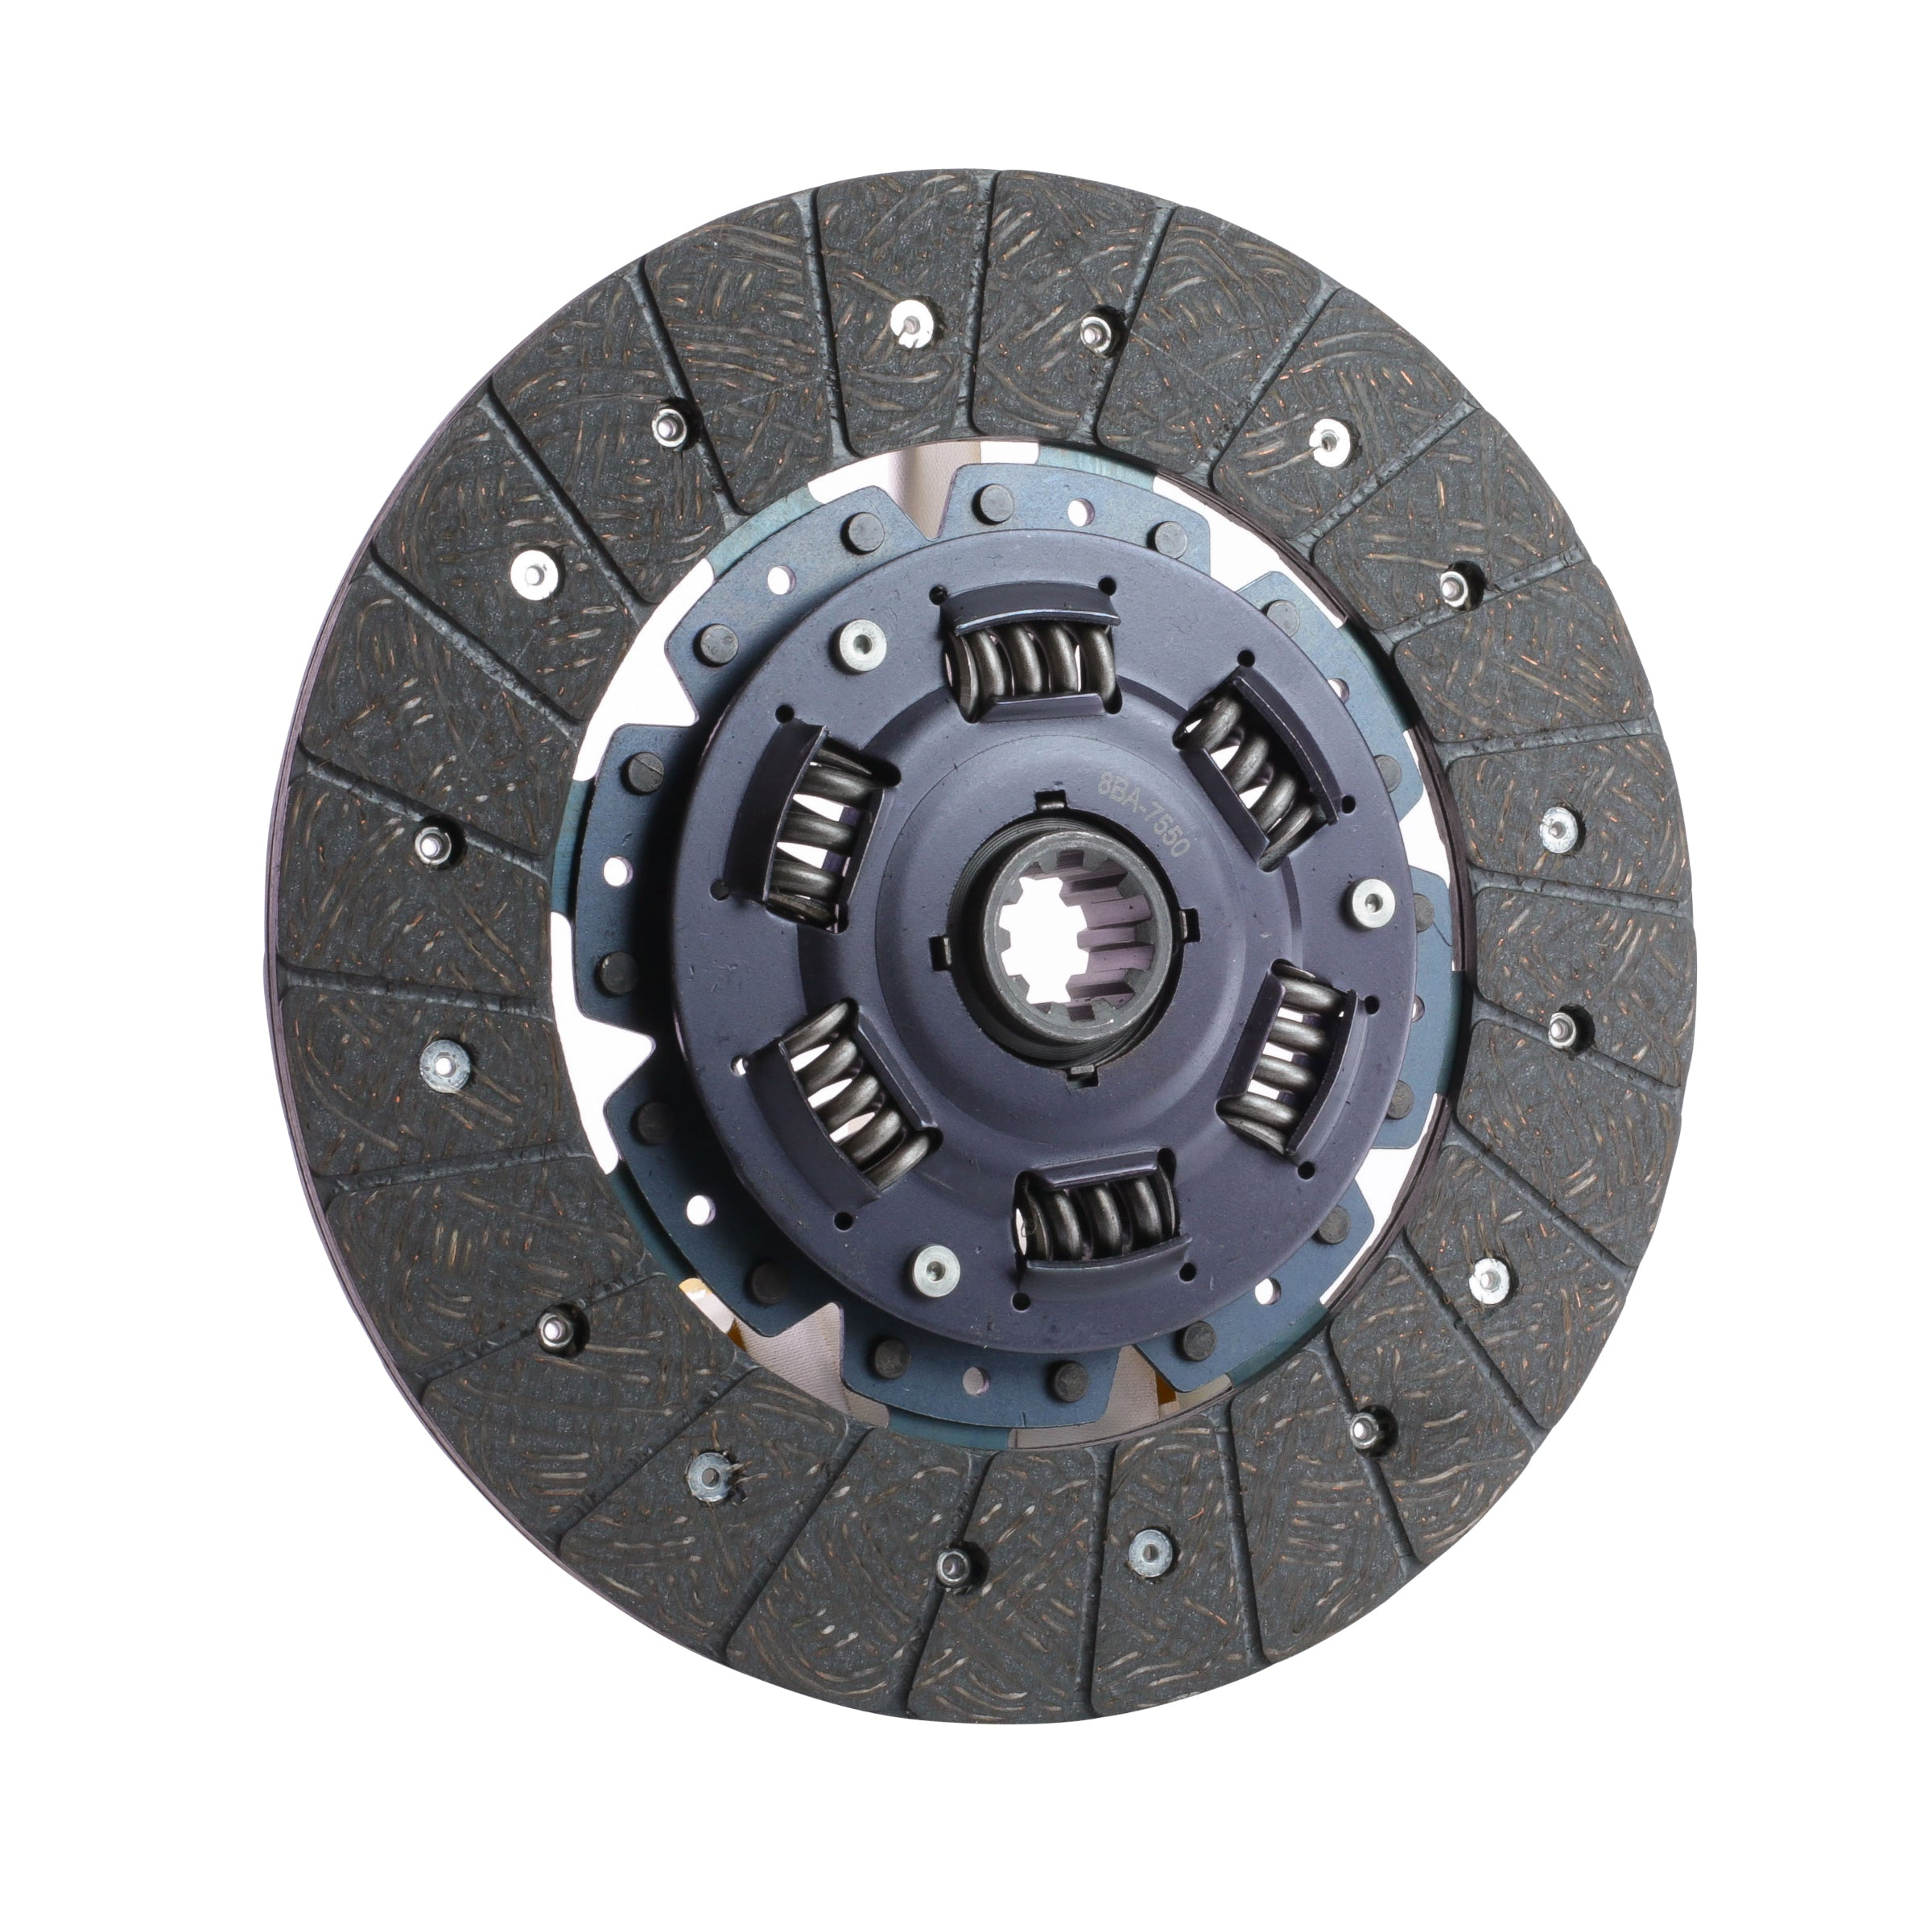 New Clutch Disc (9.5